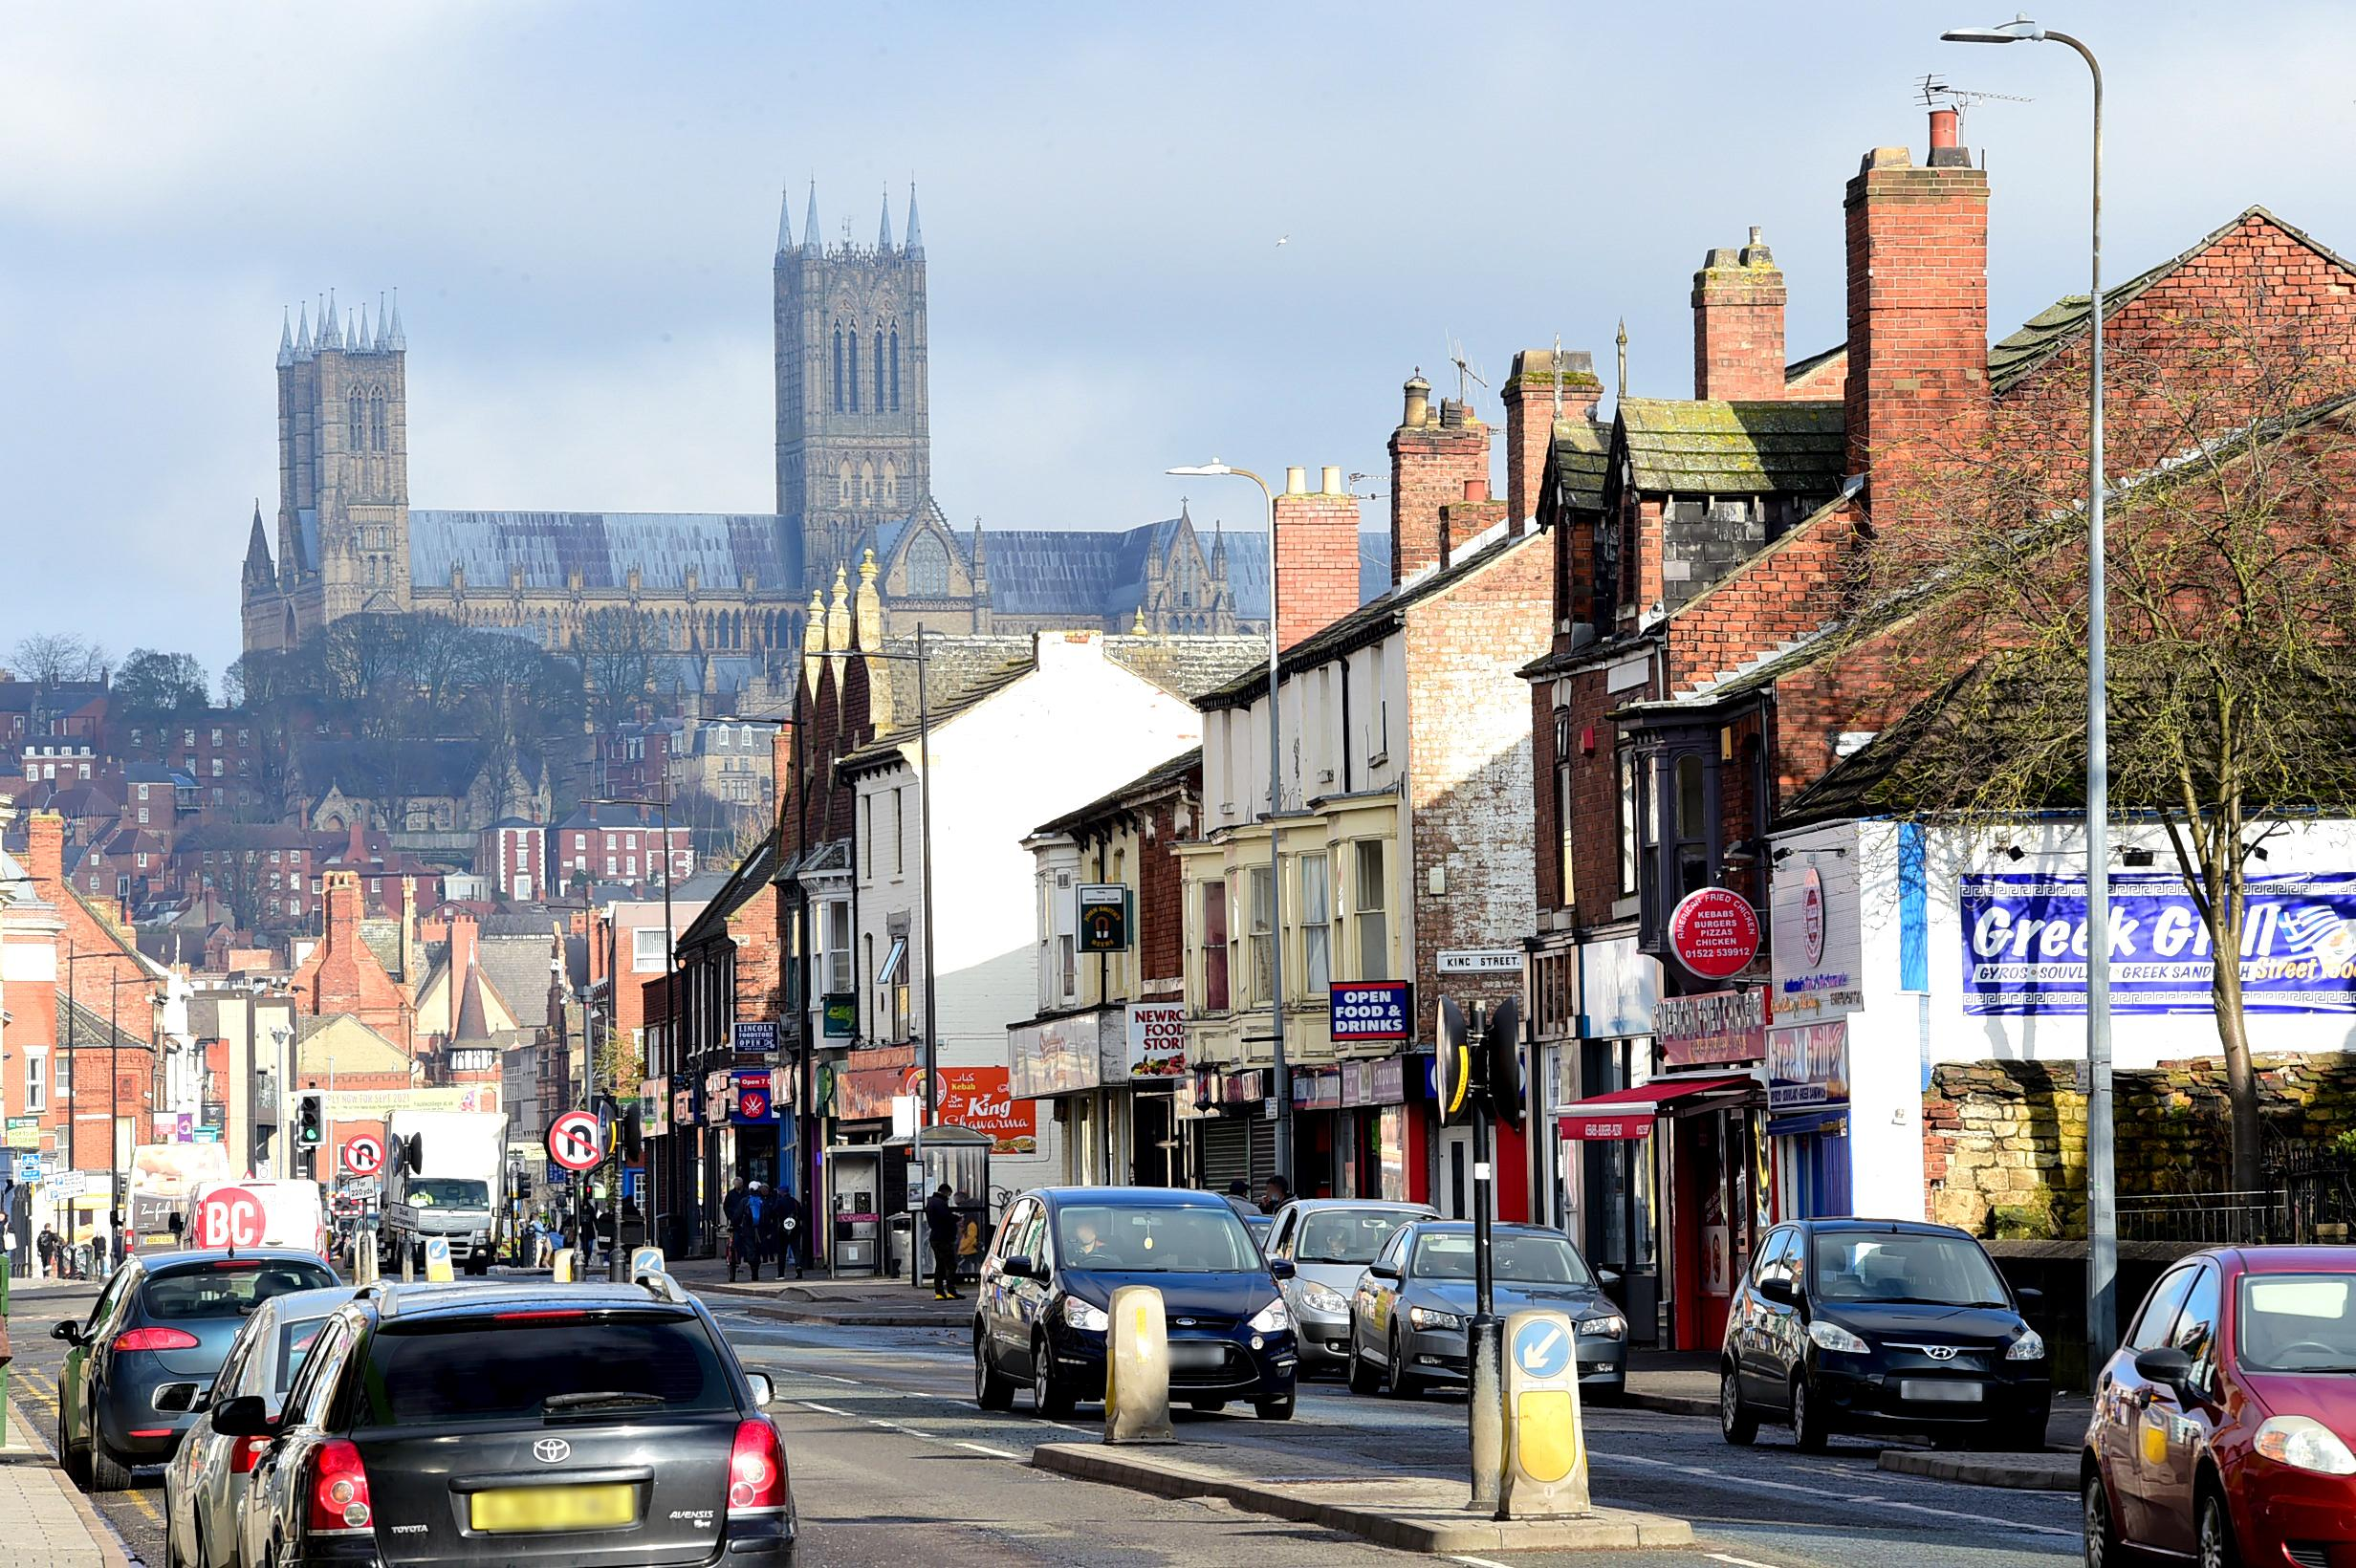 Lincoln High Street facing the cathedral in the background